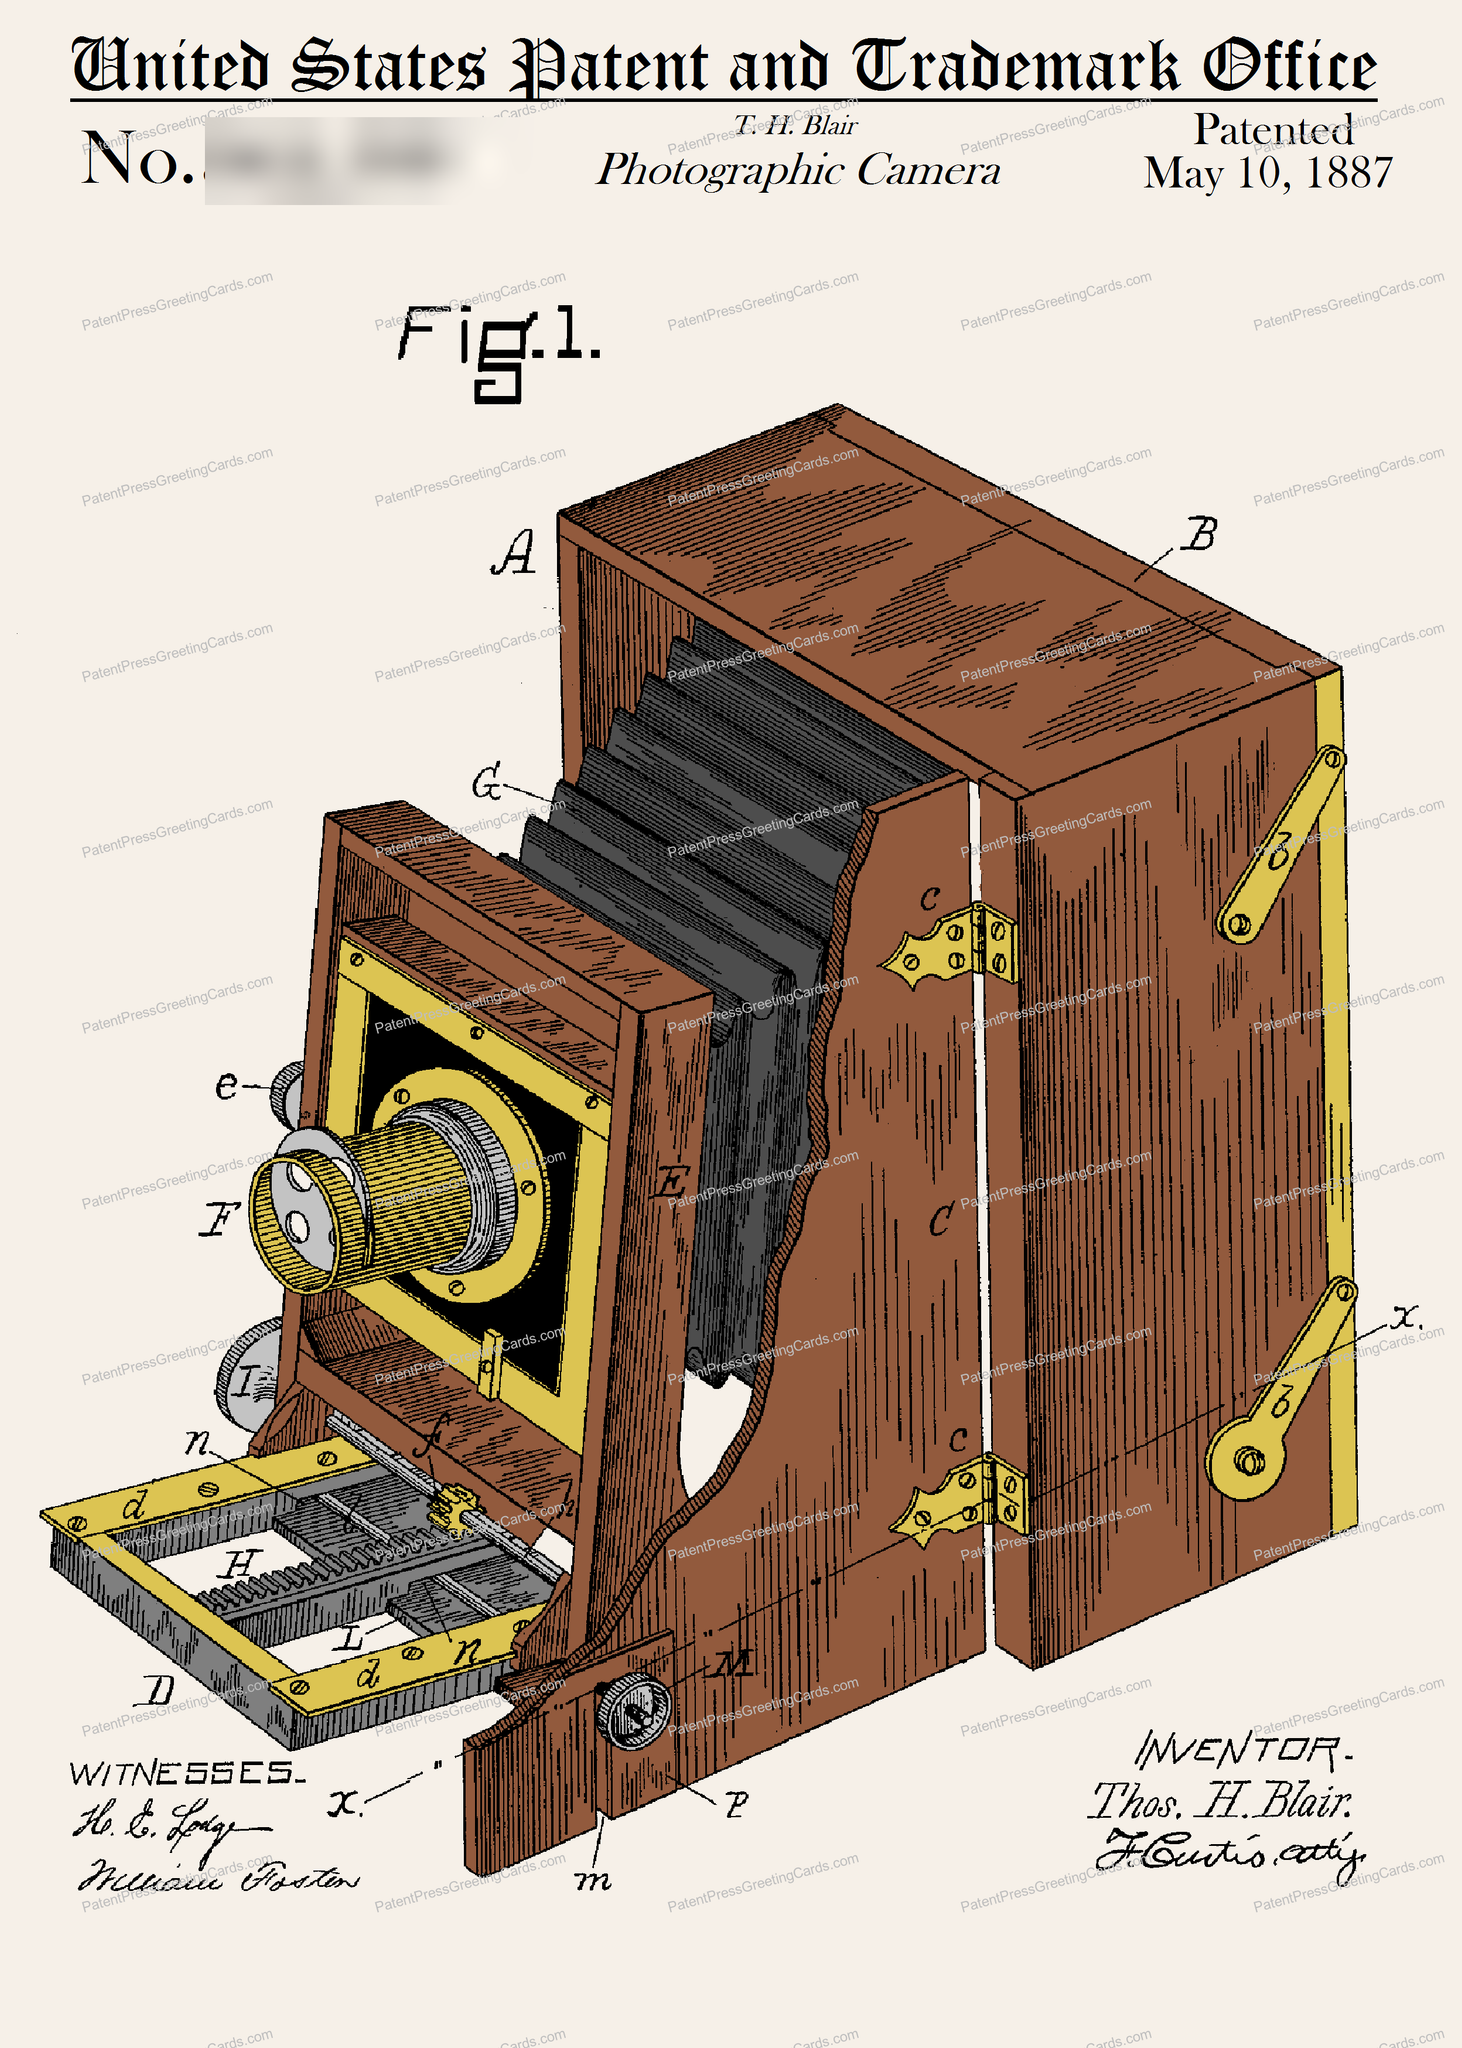 CARD-C907: Camera 1887 - Patent Press™